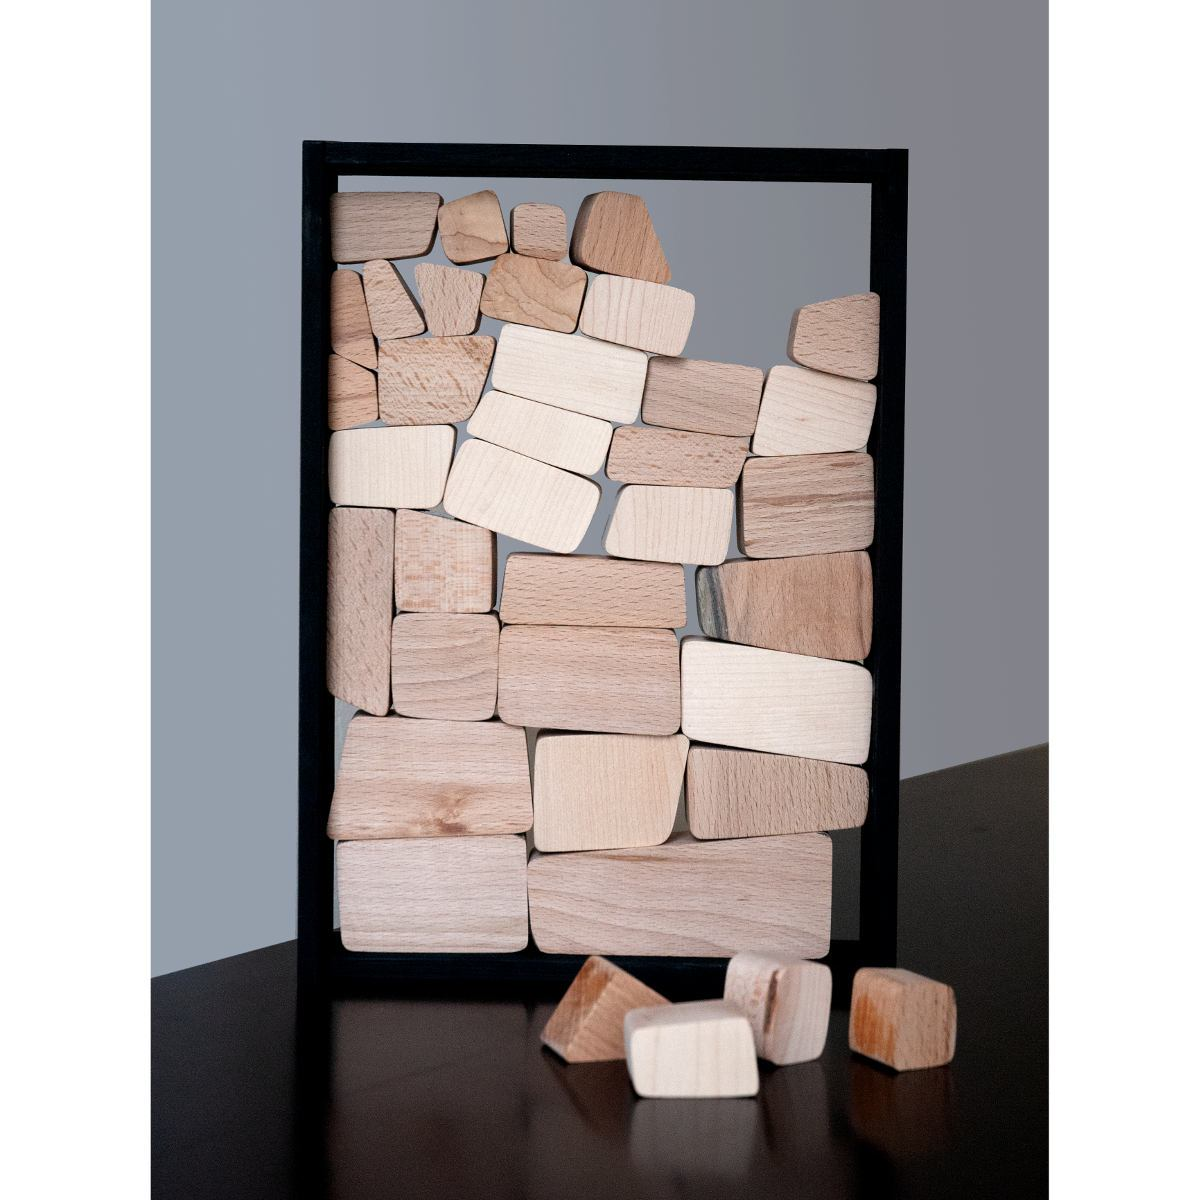 Stone Wall Puzzle Toy made of Wood